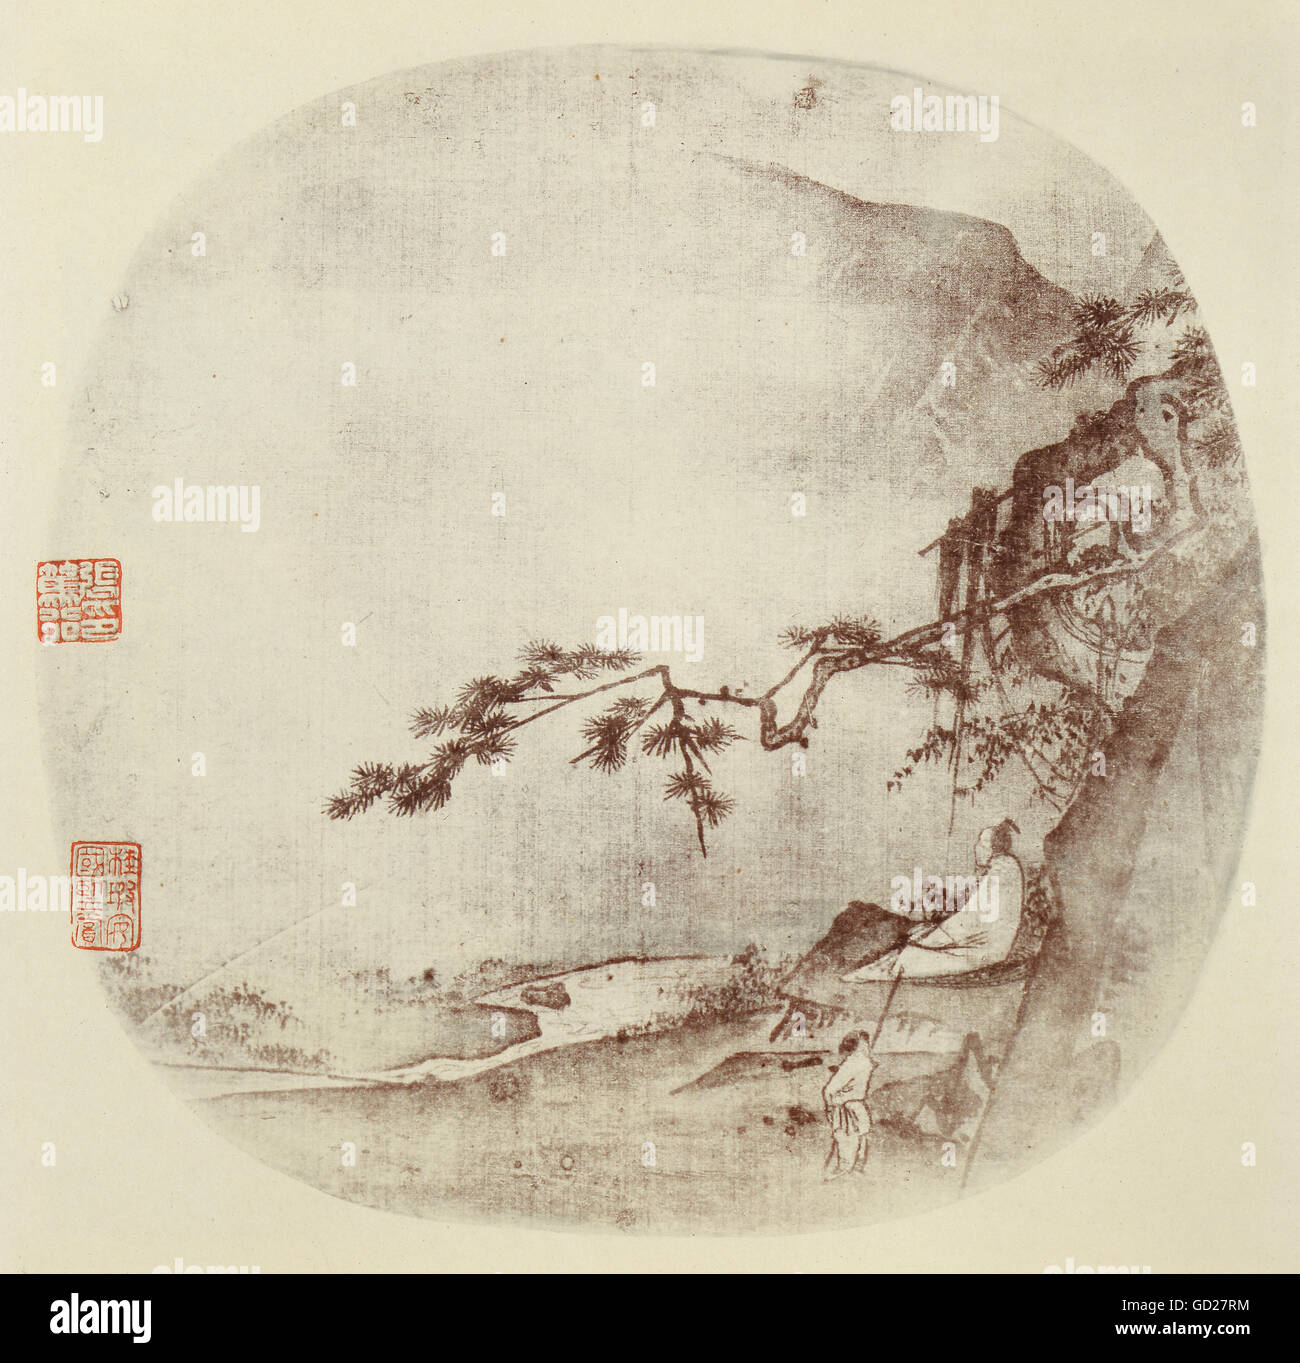 fine arts, painting, wise man sitting under a pine tree, Indian ink on silk, China, Ma Yuan, Song Dynasty (960  - Stock Image